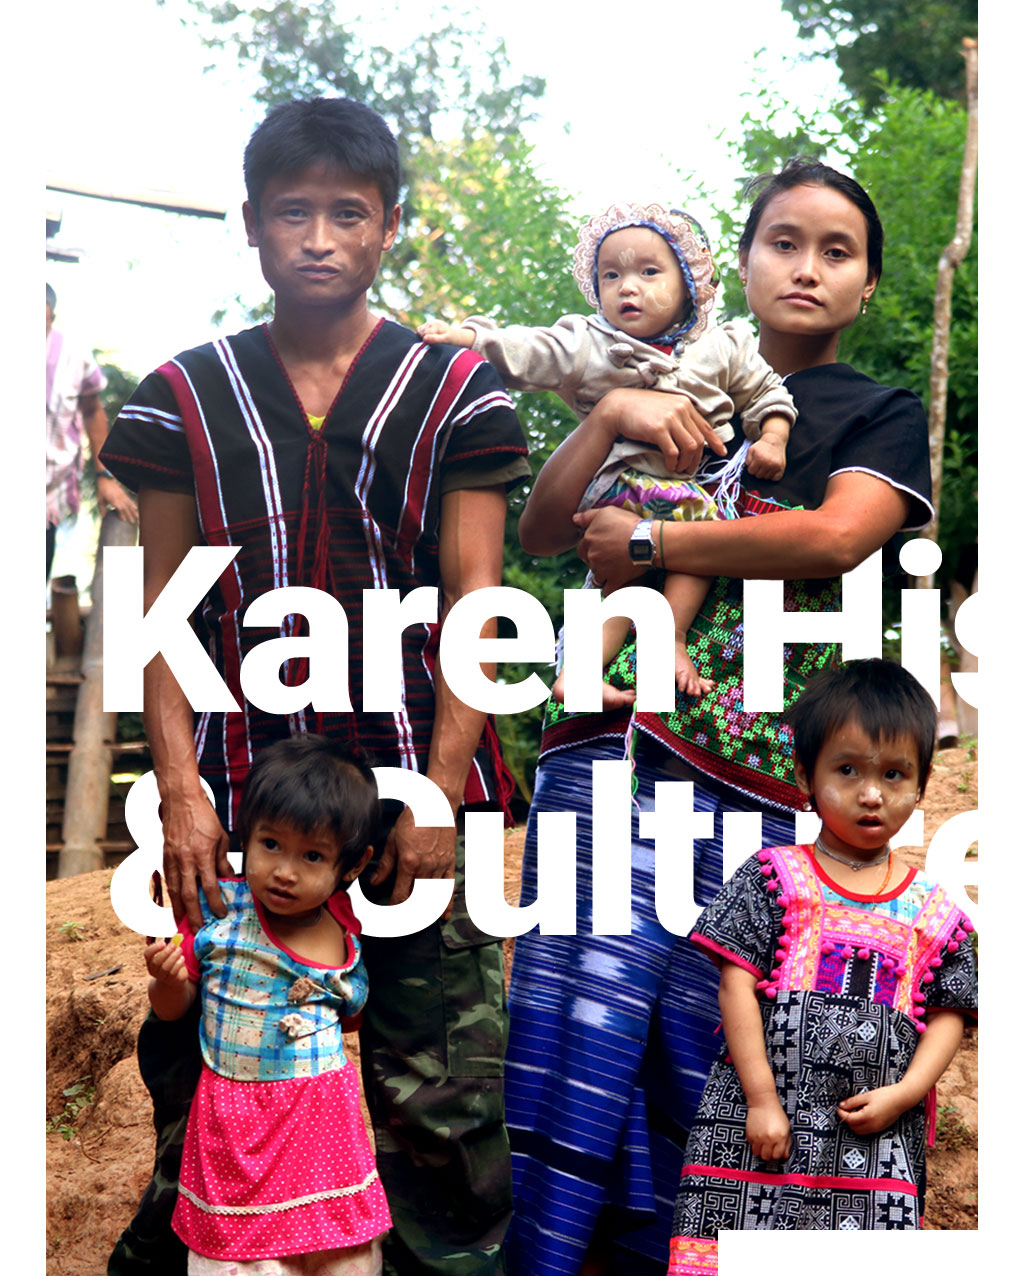 karen-national-team-full-image-header-mobile-karen-history-culture-new